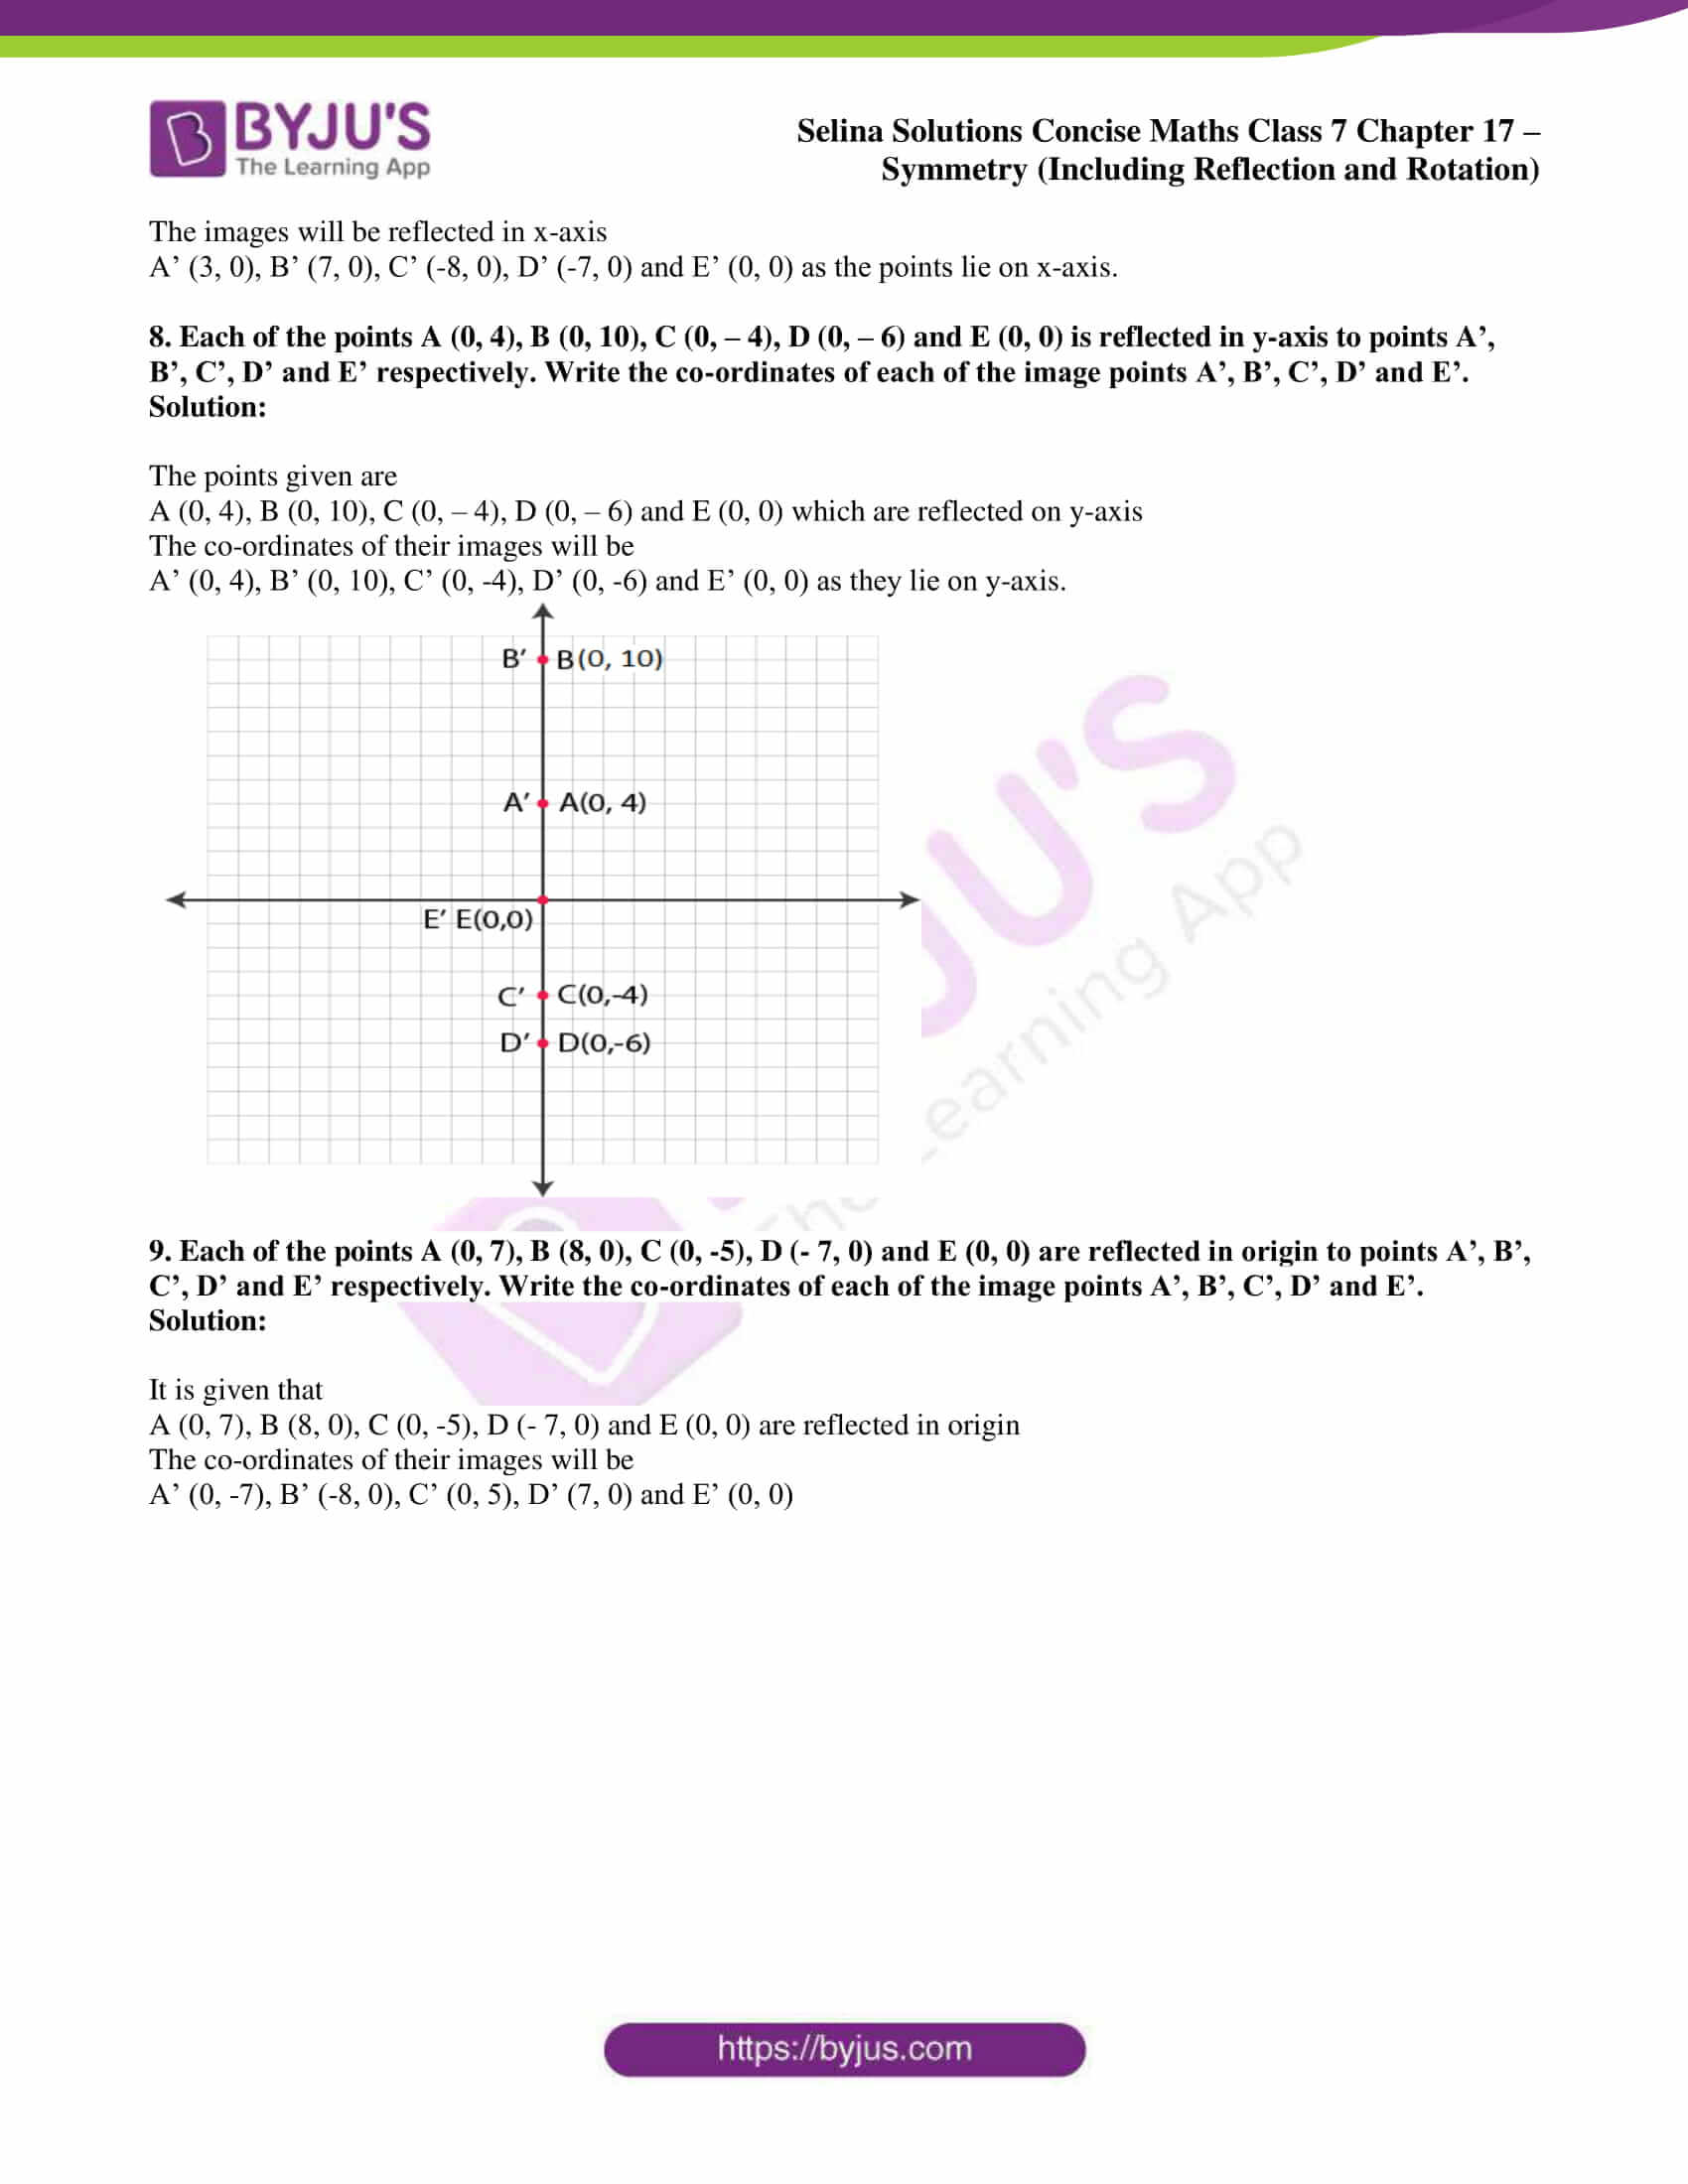 selina sol concise maths class 7 chapter 17 ex b 6